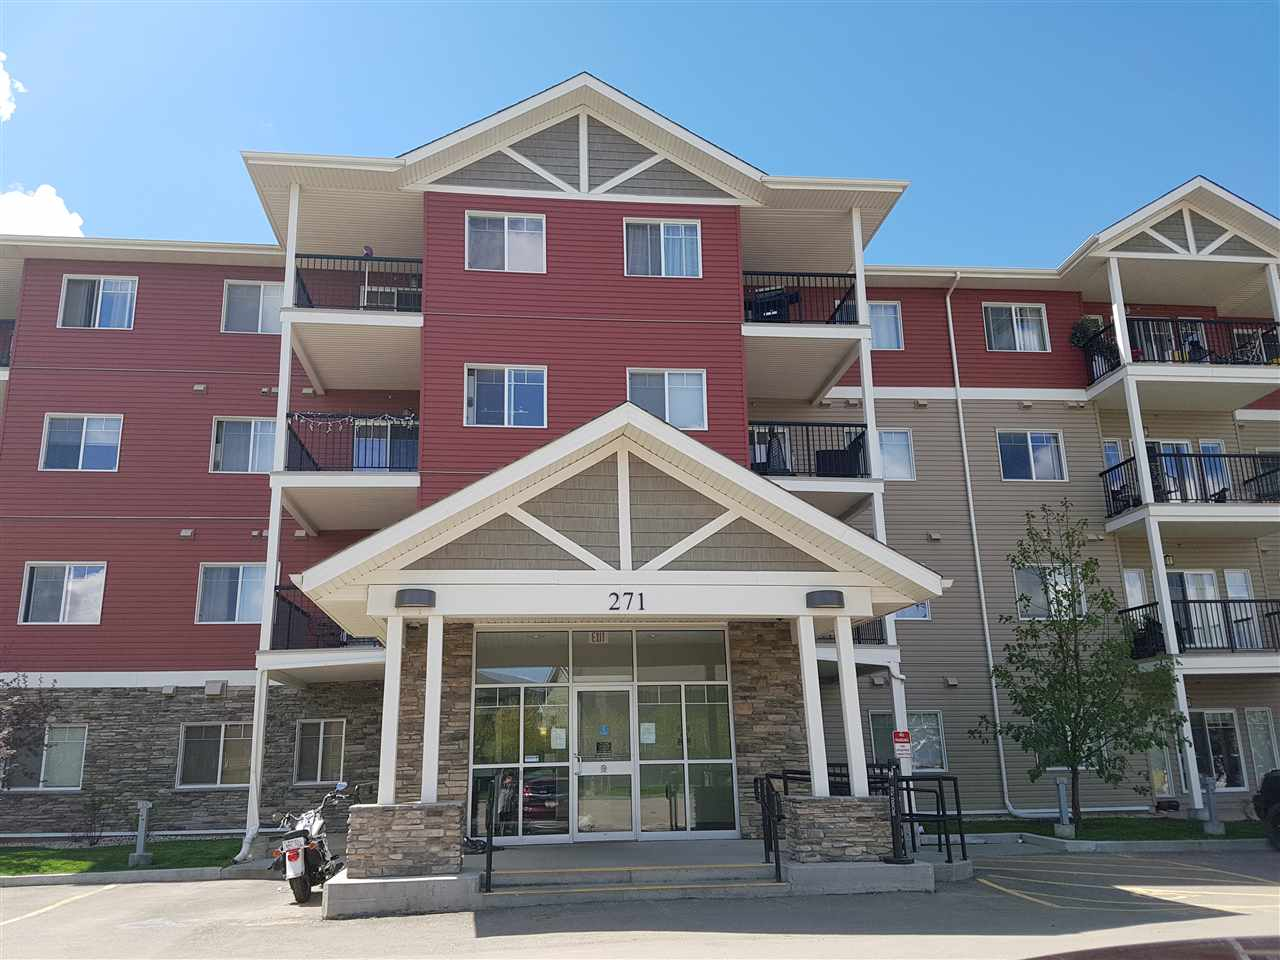 Main Photo: 413 271 CHARLOTTE Way: Sherwood Park Condo for sale : MLS(r) # E4065239